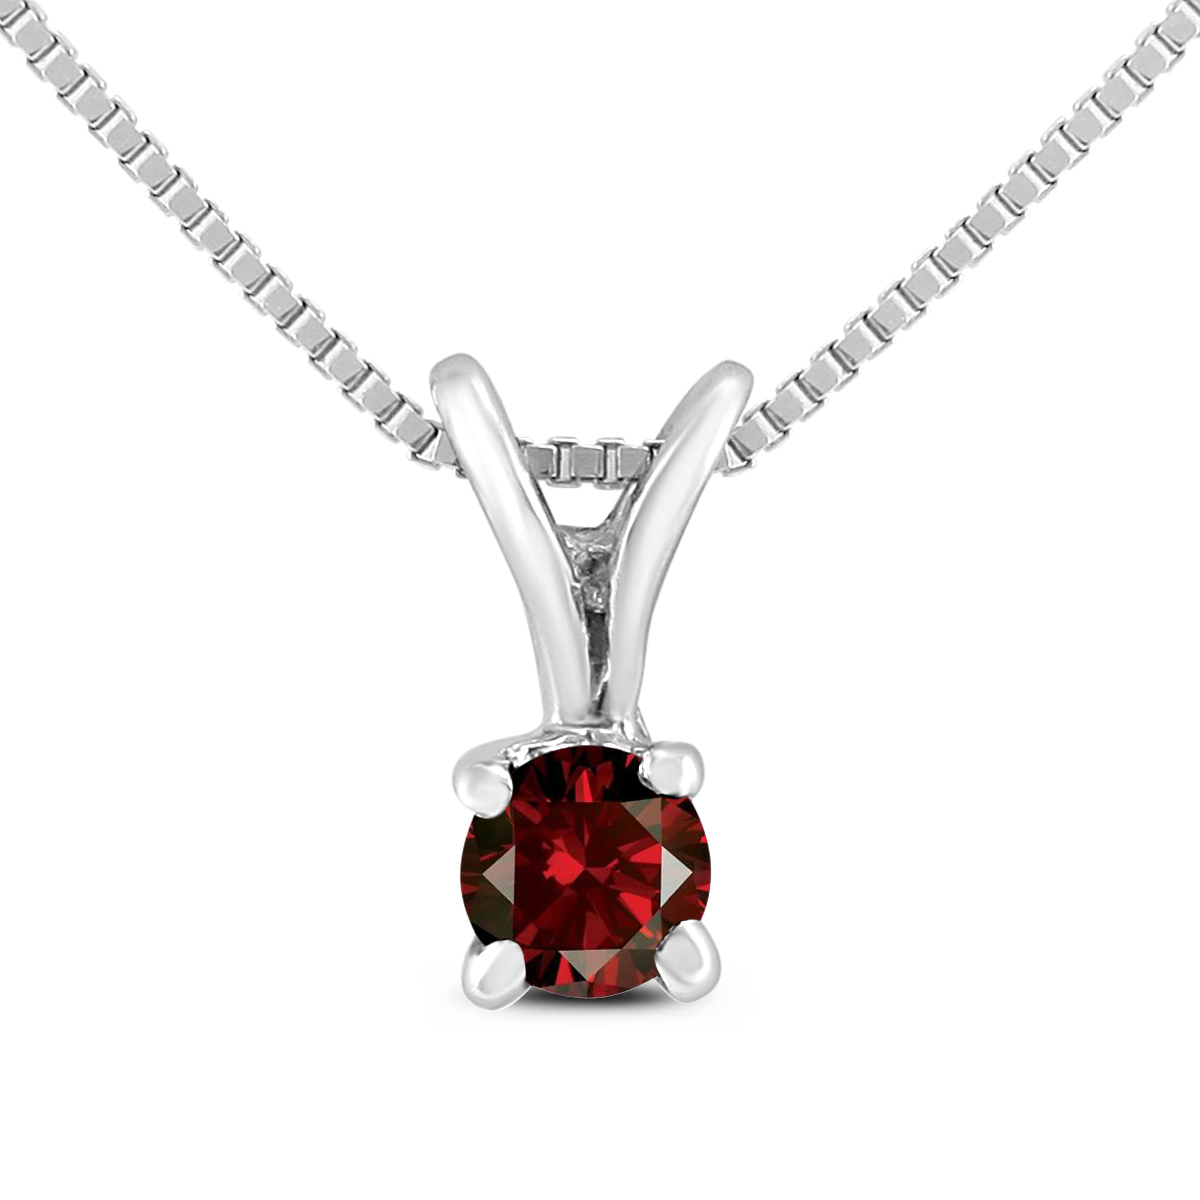 1/10 Carat Genuine Red Diamond Solitaire Pendant in .925 Sterling Silver